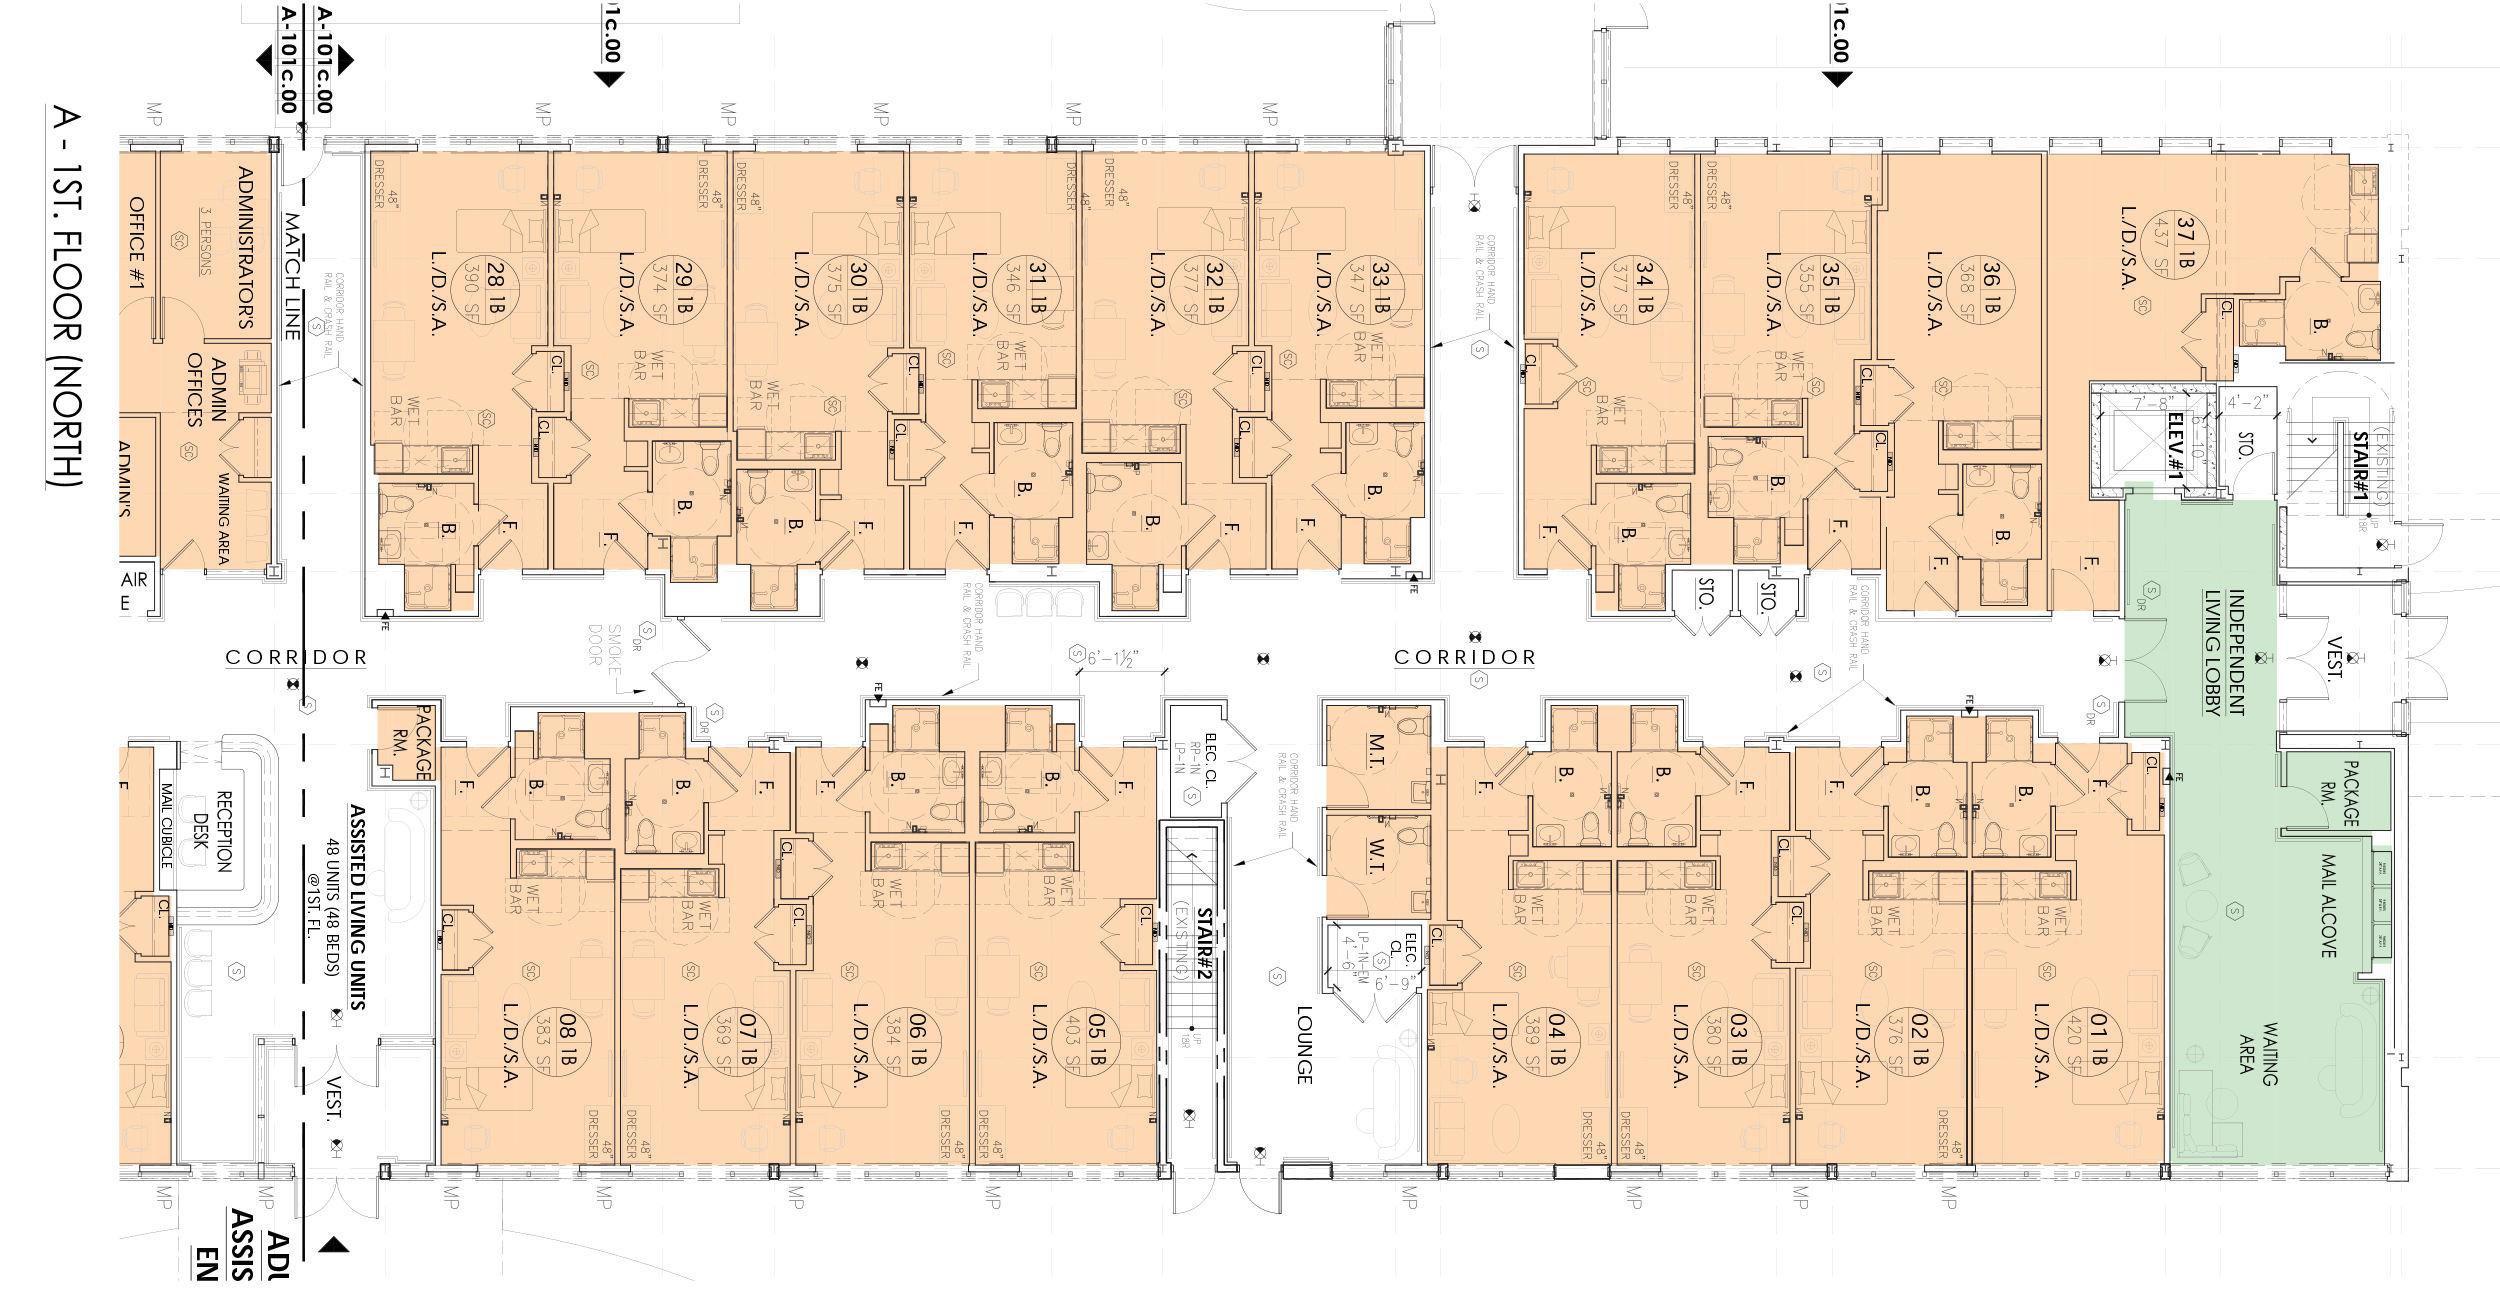 03_assisted_living_north_1st_floor.jpg